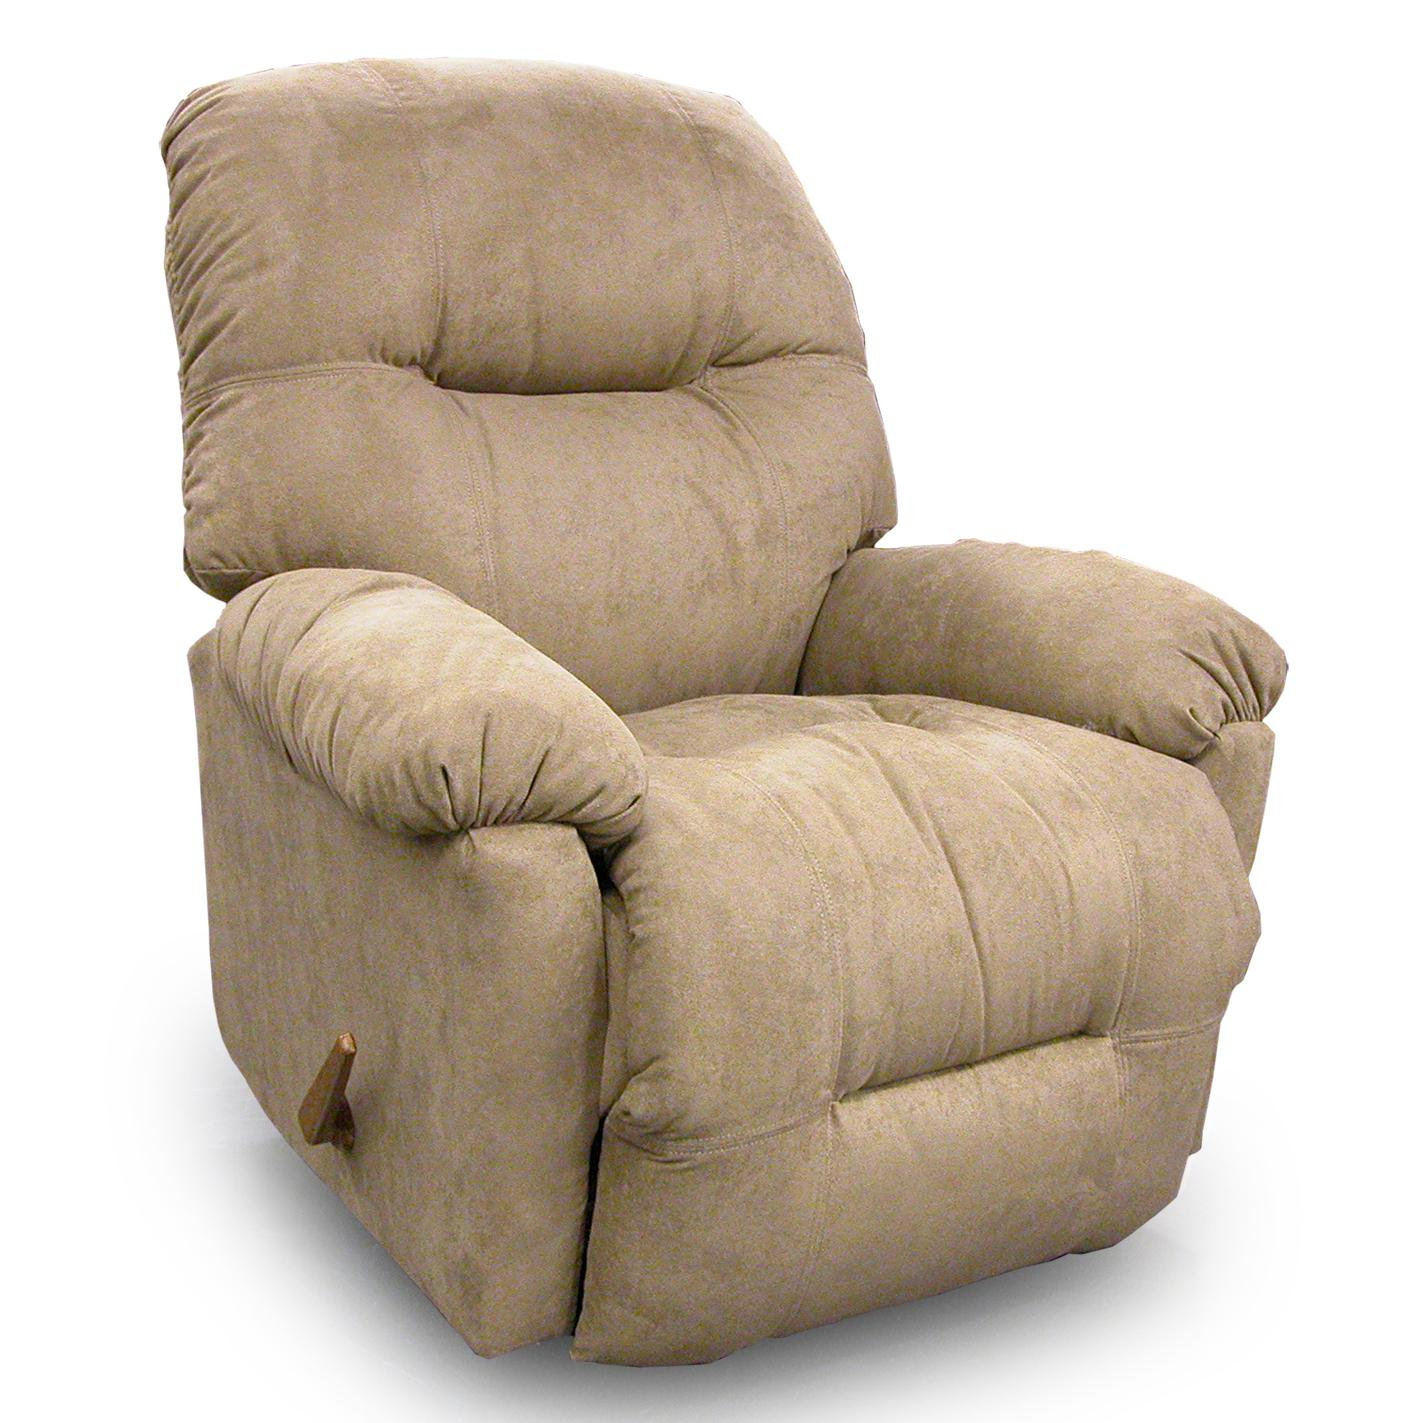 Petite Chairs Best Home Furnishings Petite Recliners Wynette Power Lift